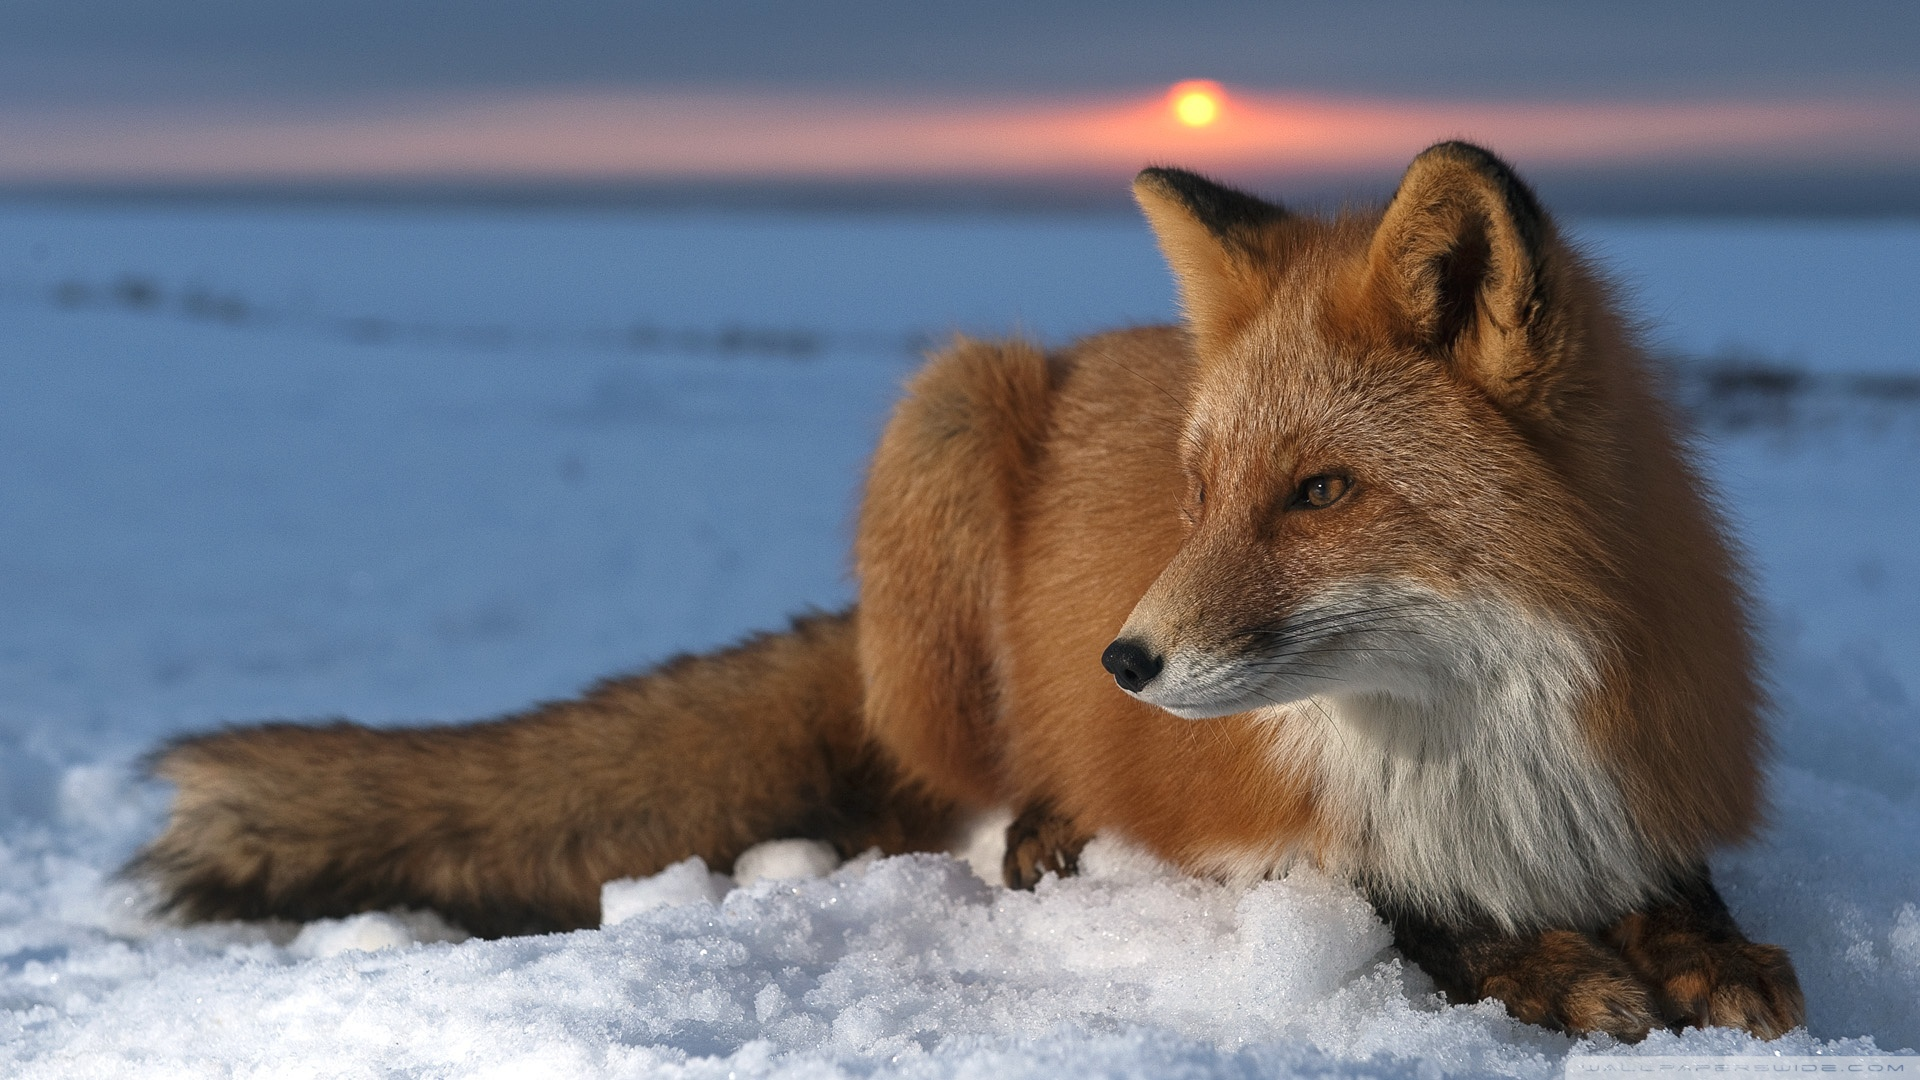 Fox HD Wallpaper